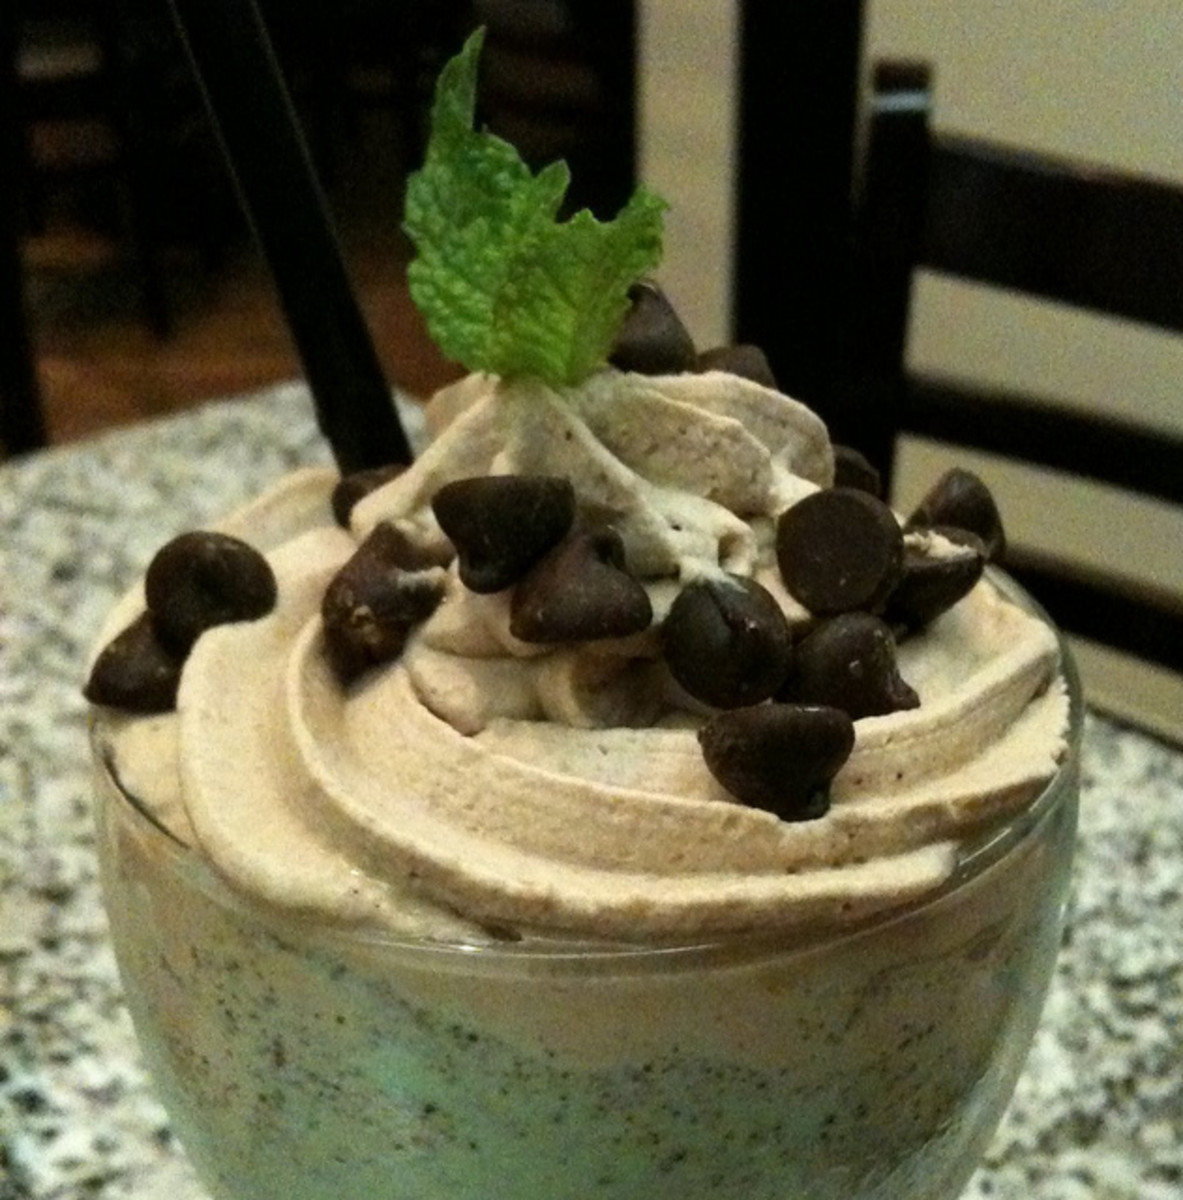 This mint chocolate shake includes more chocolate than mint.